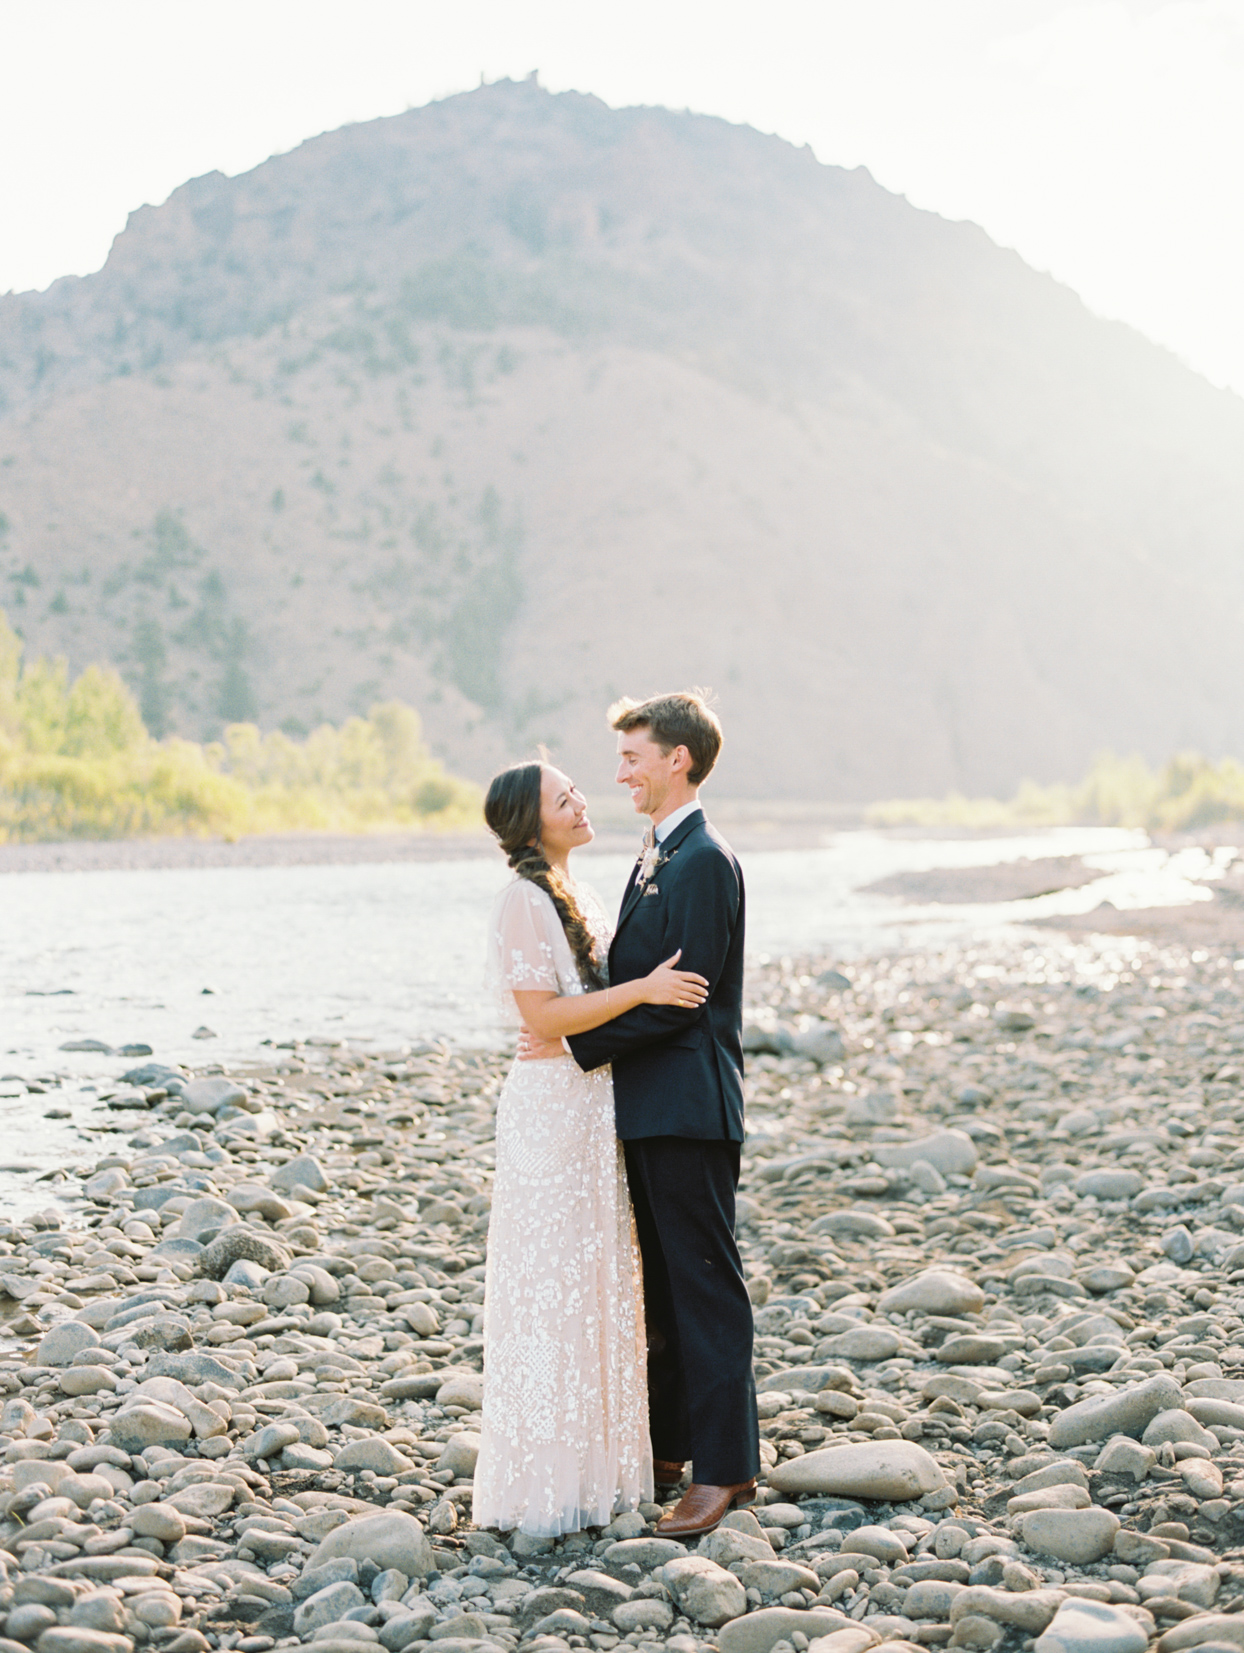 wedding couple portrait by water and mountains